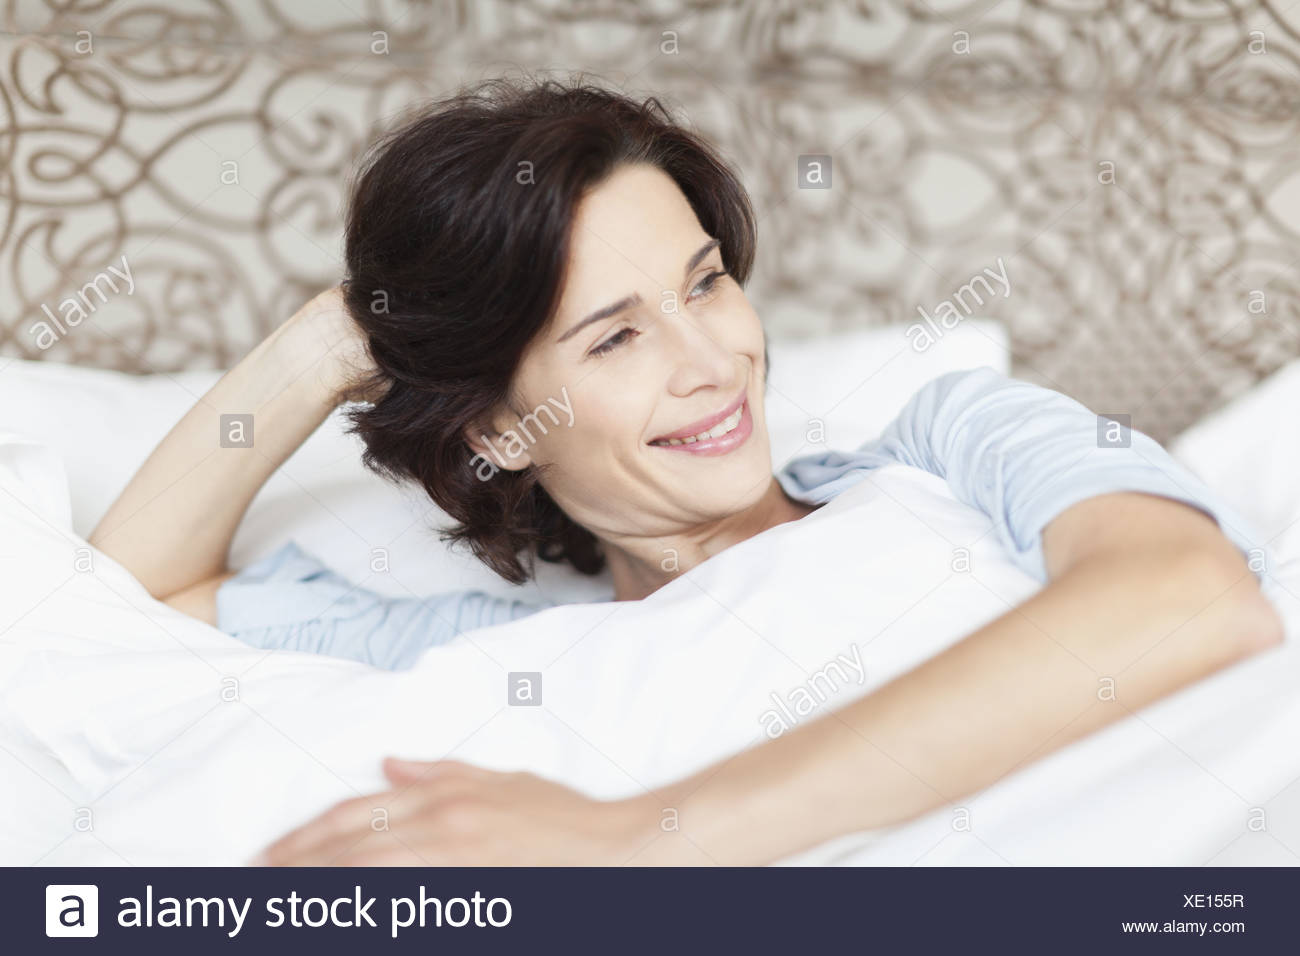 Smiling woman sitting up in bed Photo Stock